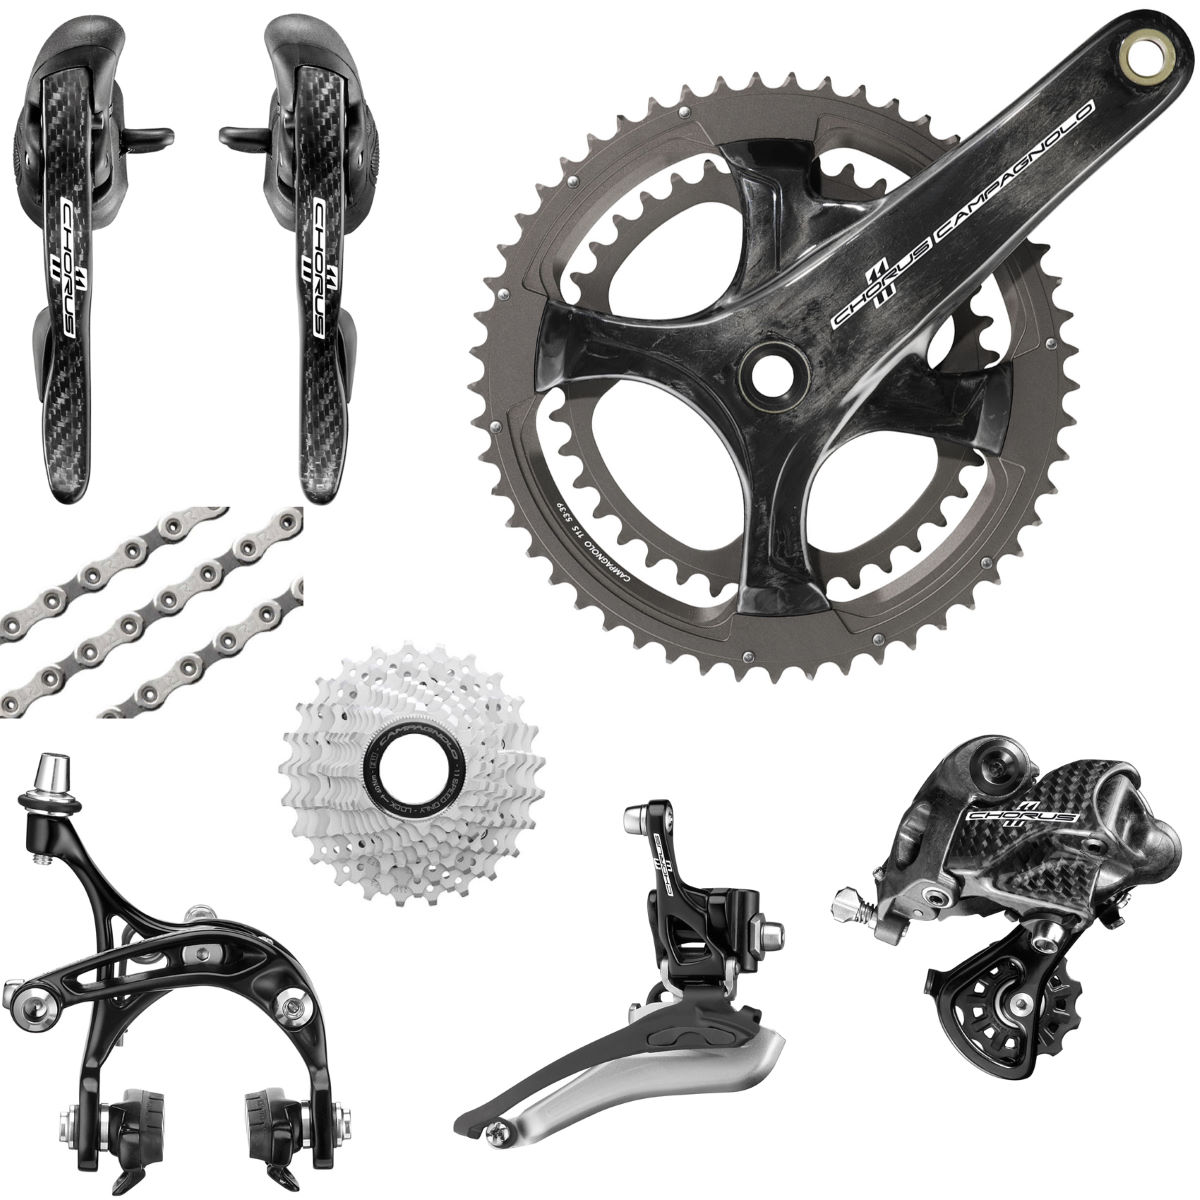 Groupe Campagnolo Chorus (Carbone) 11 vitesses - -170mm x 50/34 Black 12-29 cassette Groupes